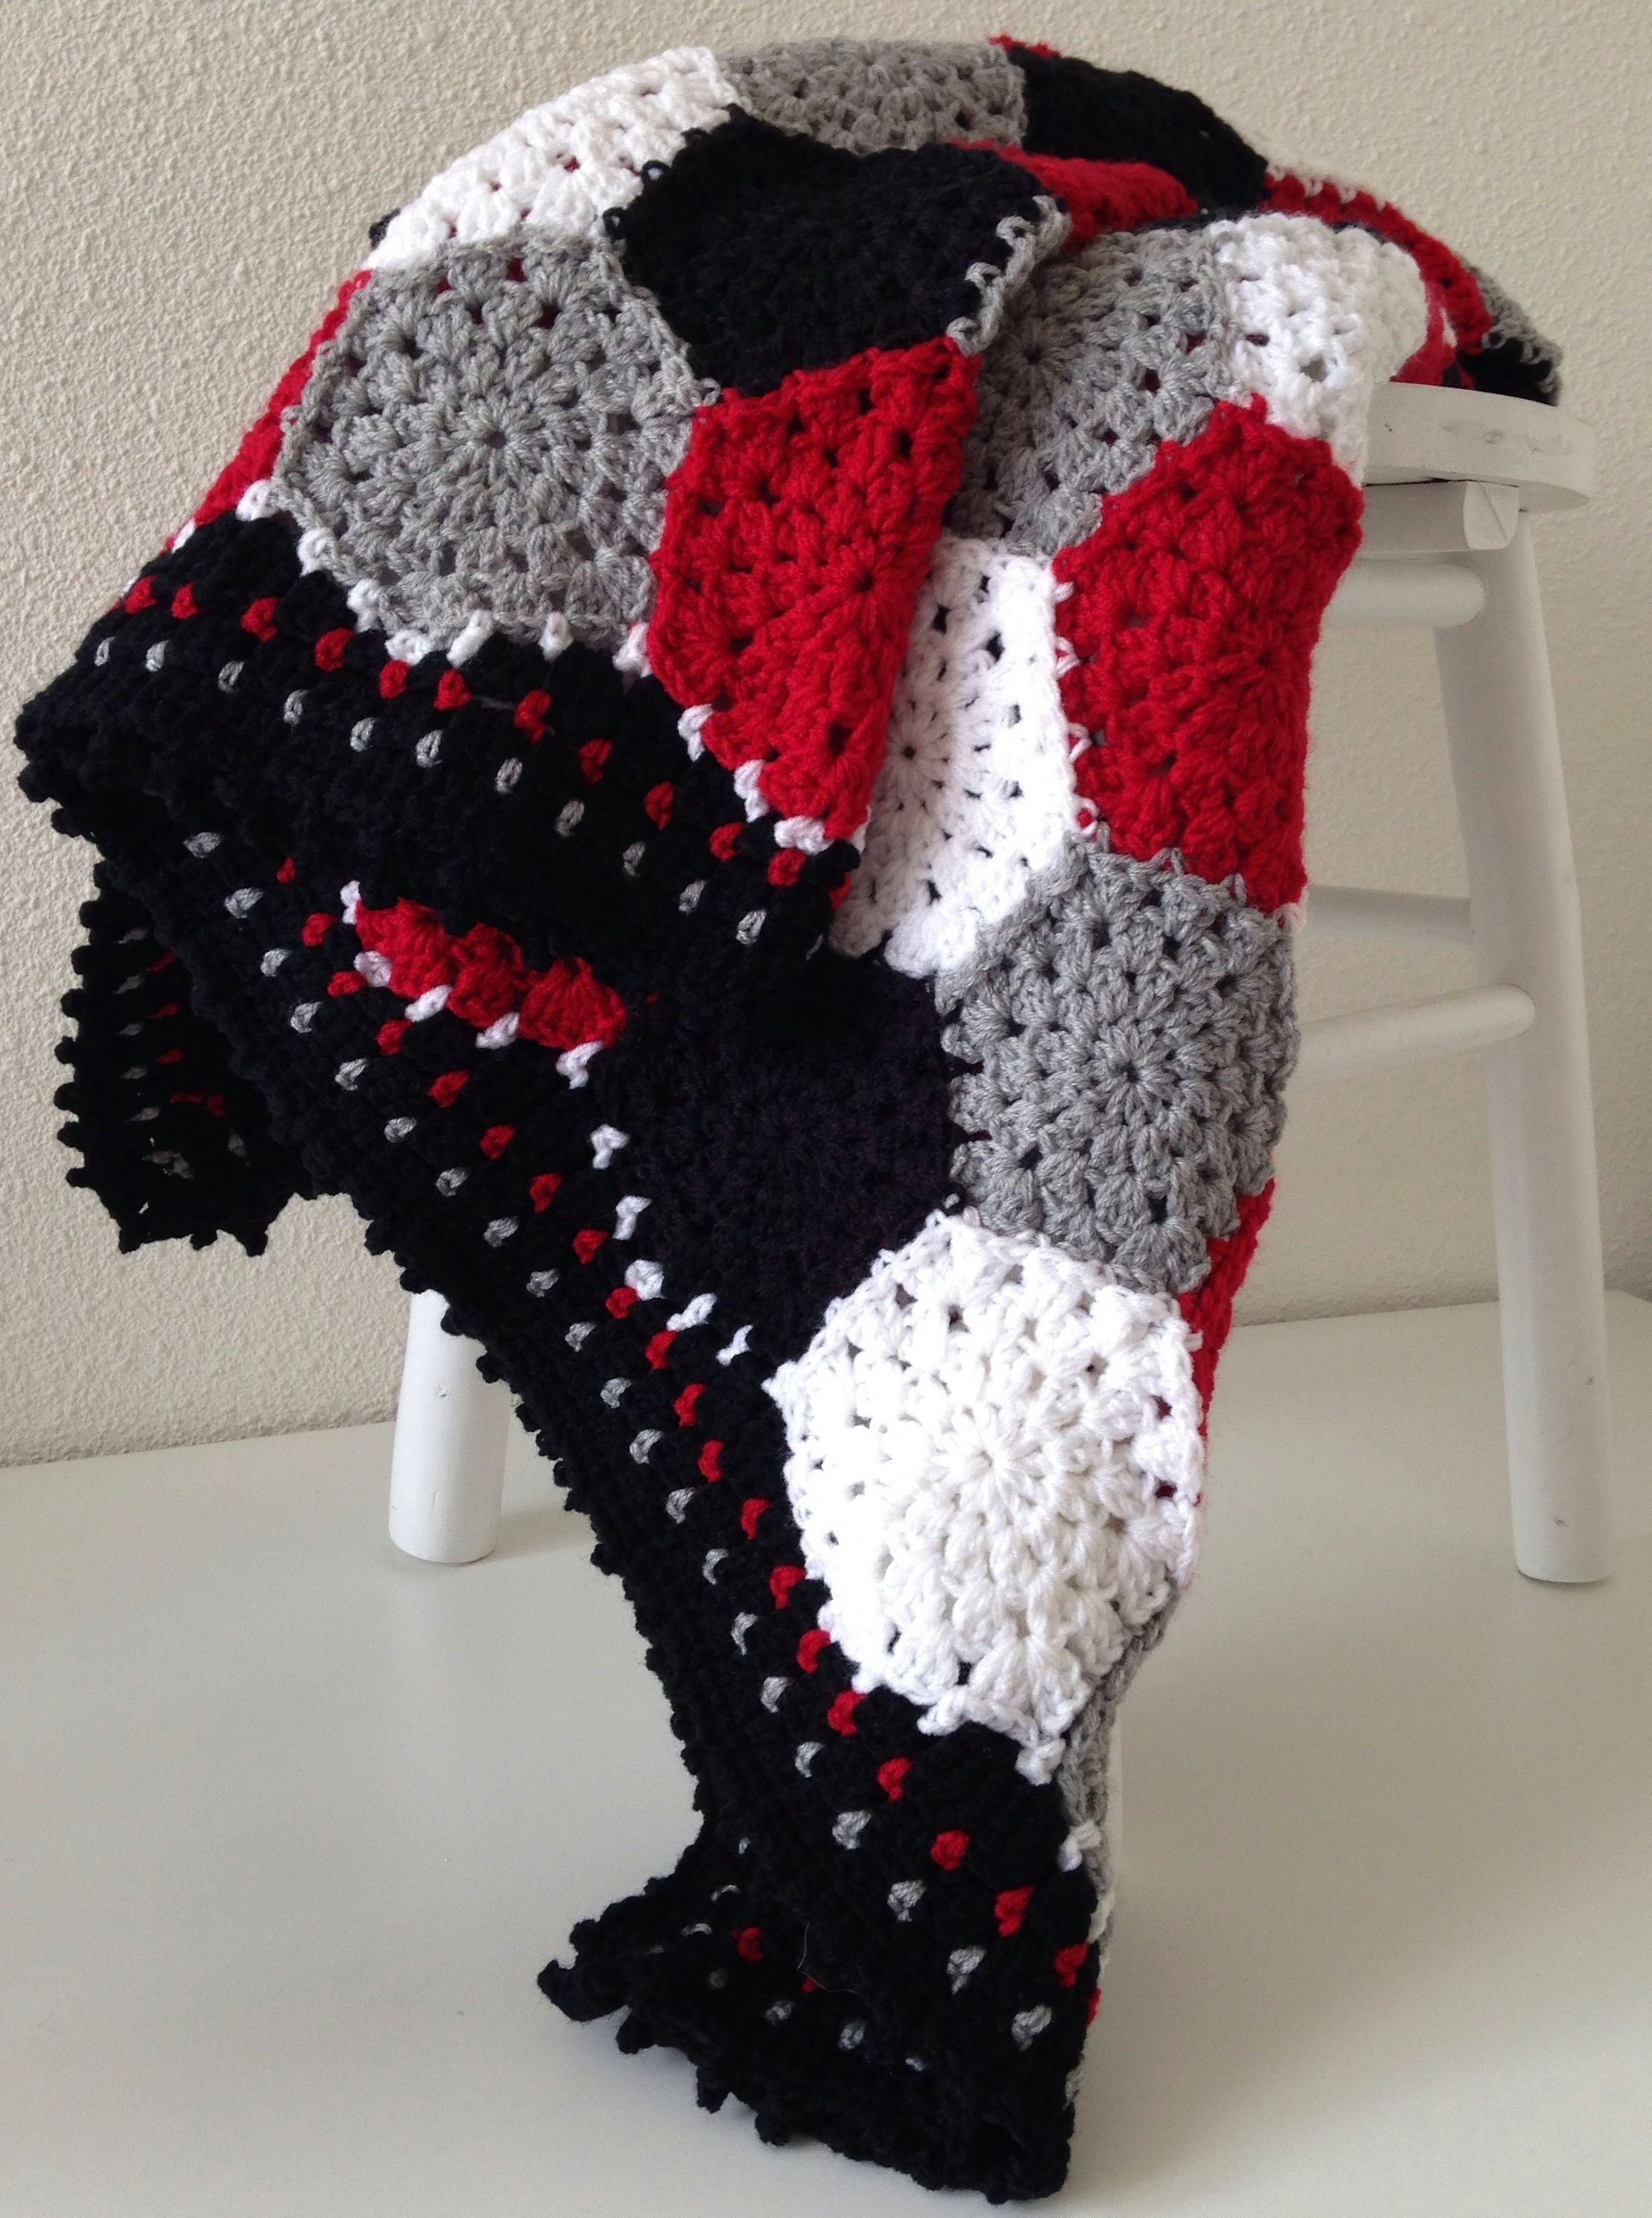 Marrose ccc hexagon blanket in black grey white and red marrose ccc hexagon blanket in black grey white and red crochet bankloansurffo Image collections